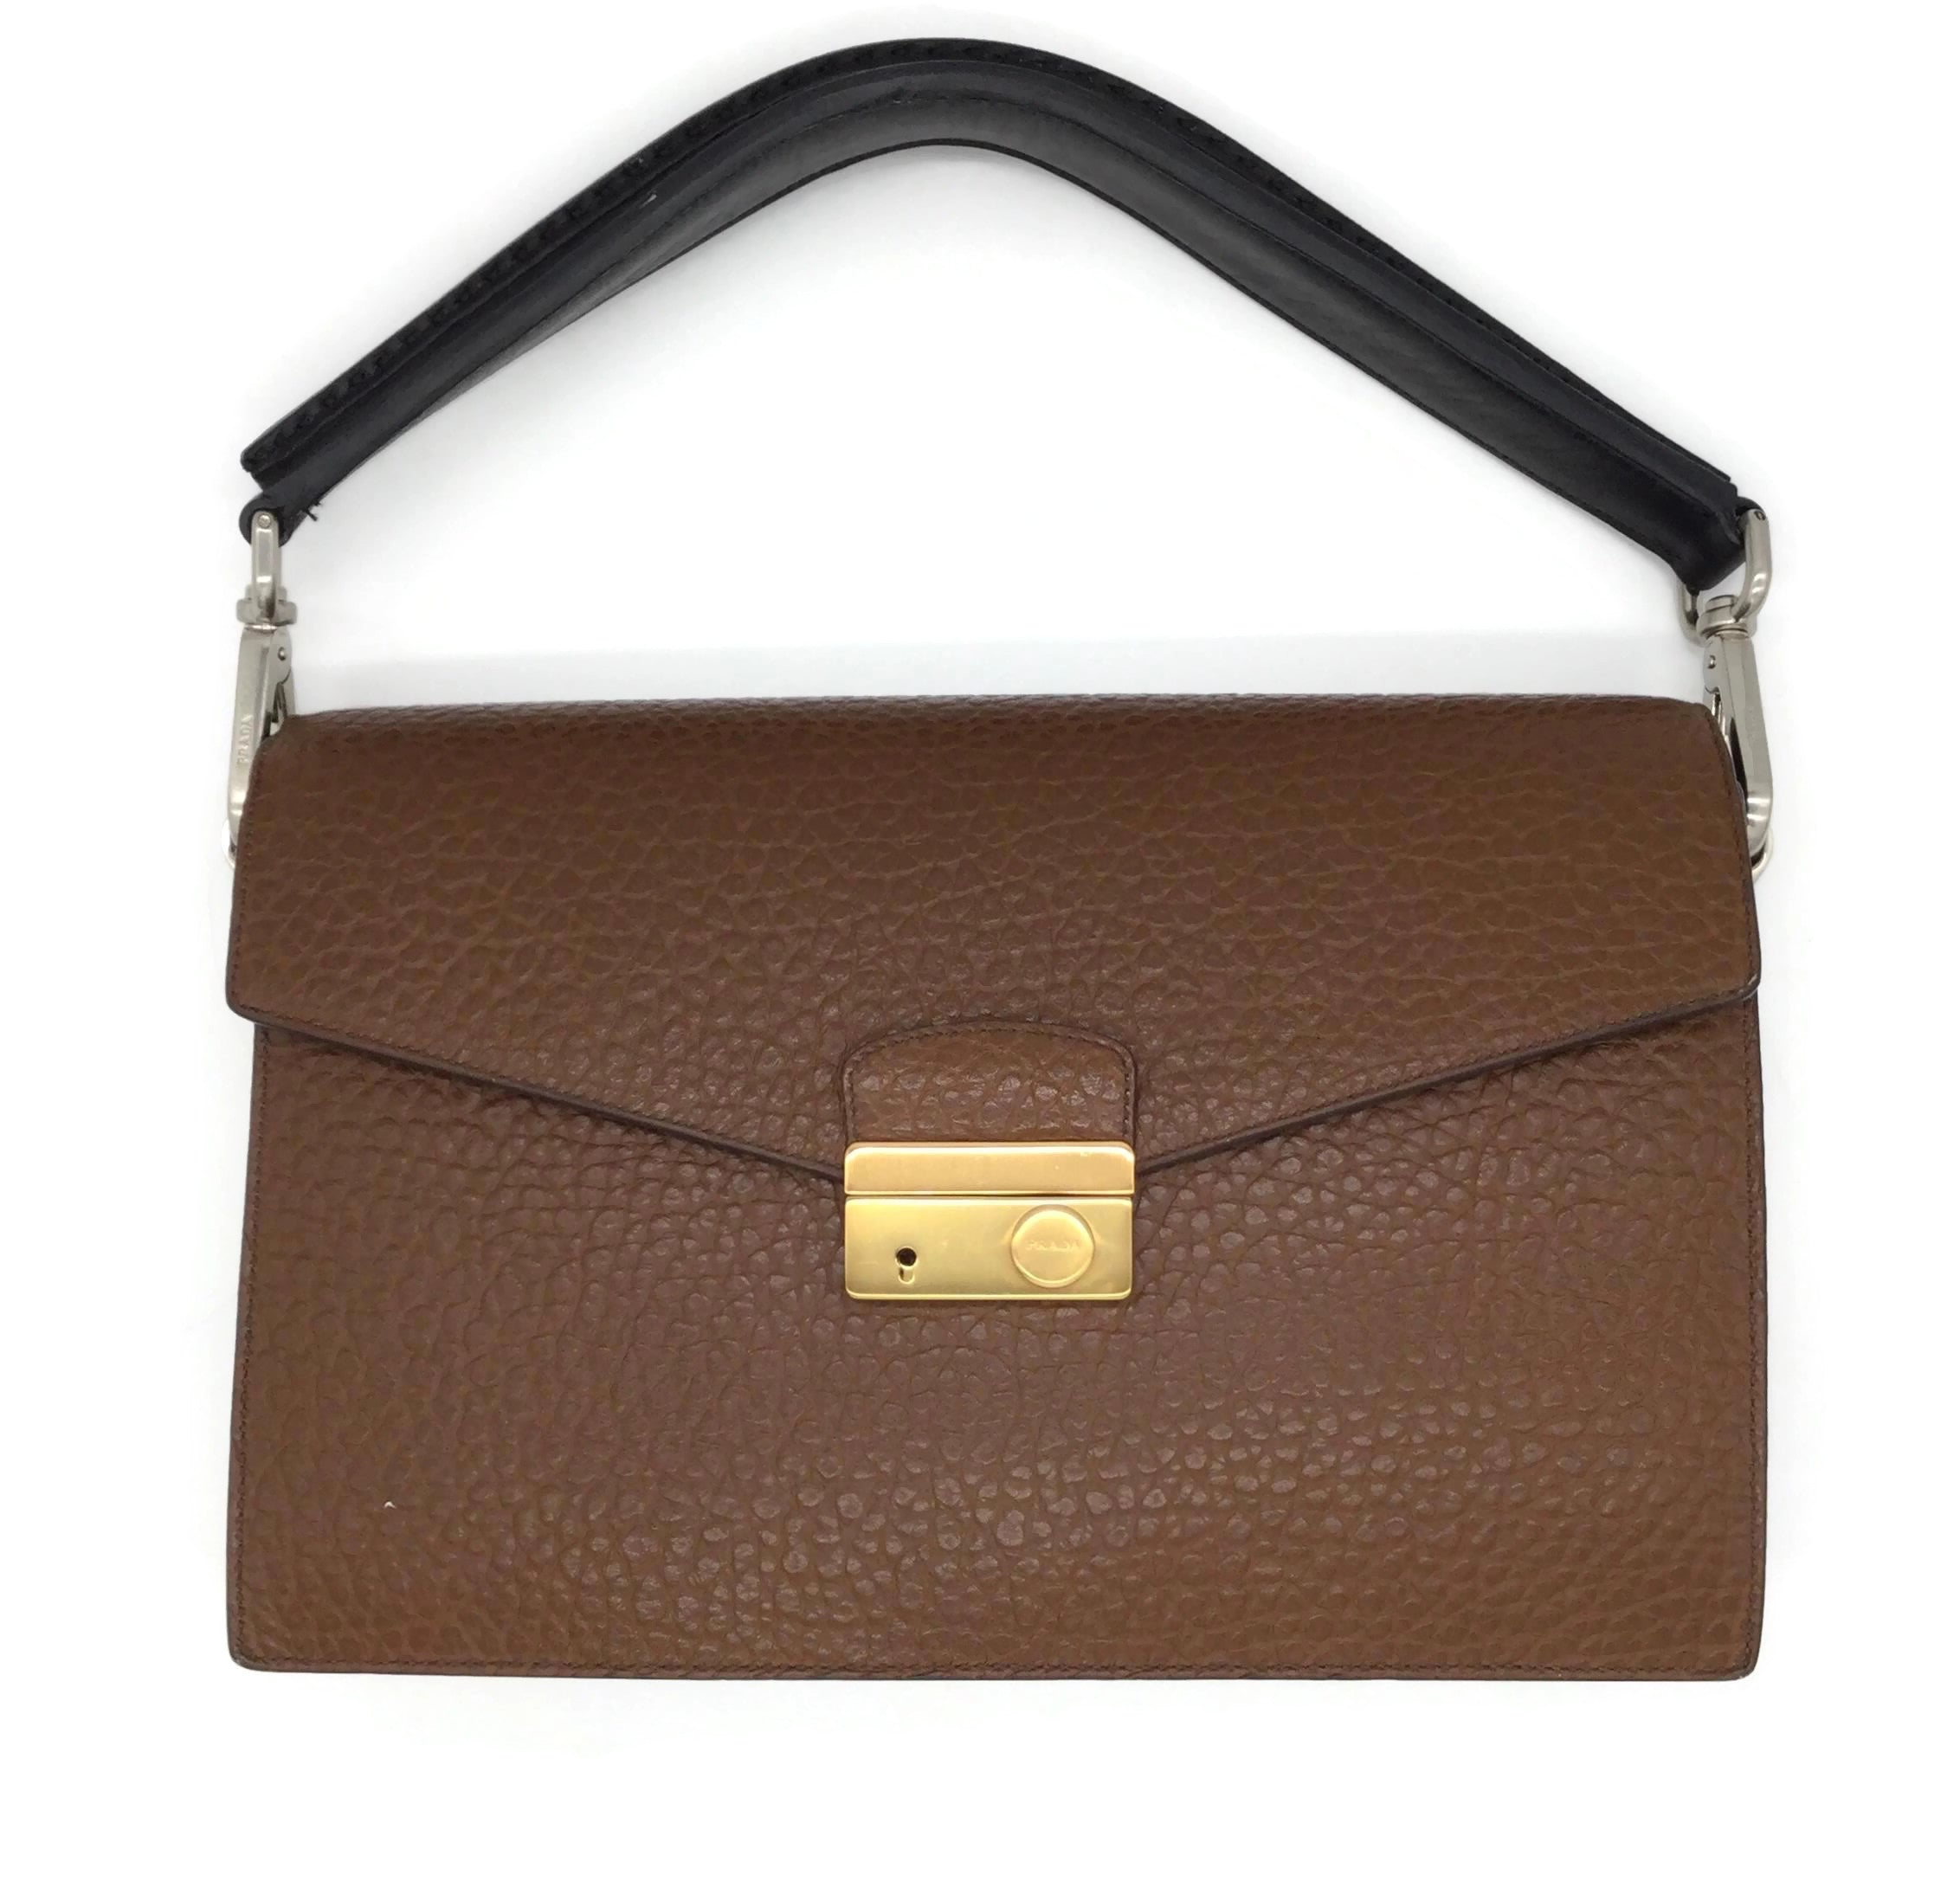 Prada Berlino Sound Brown Pebbled Leather Shoulder Bag